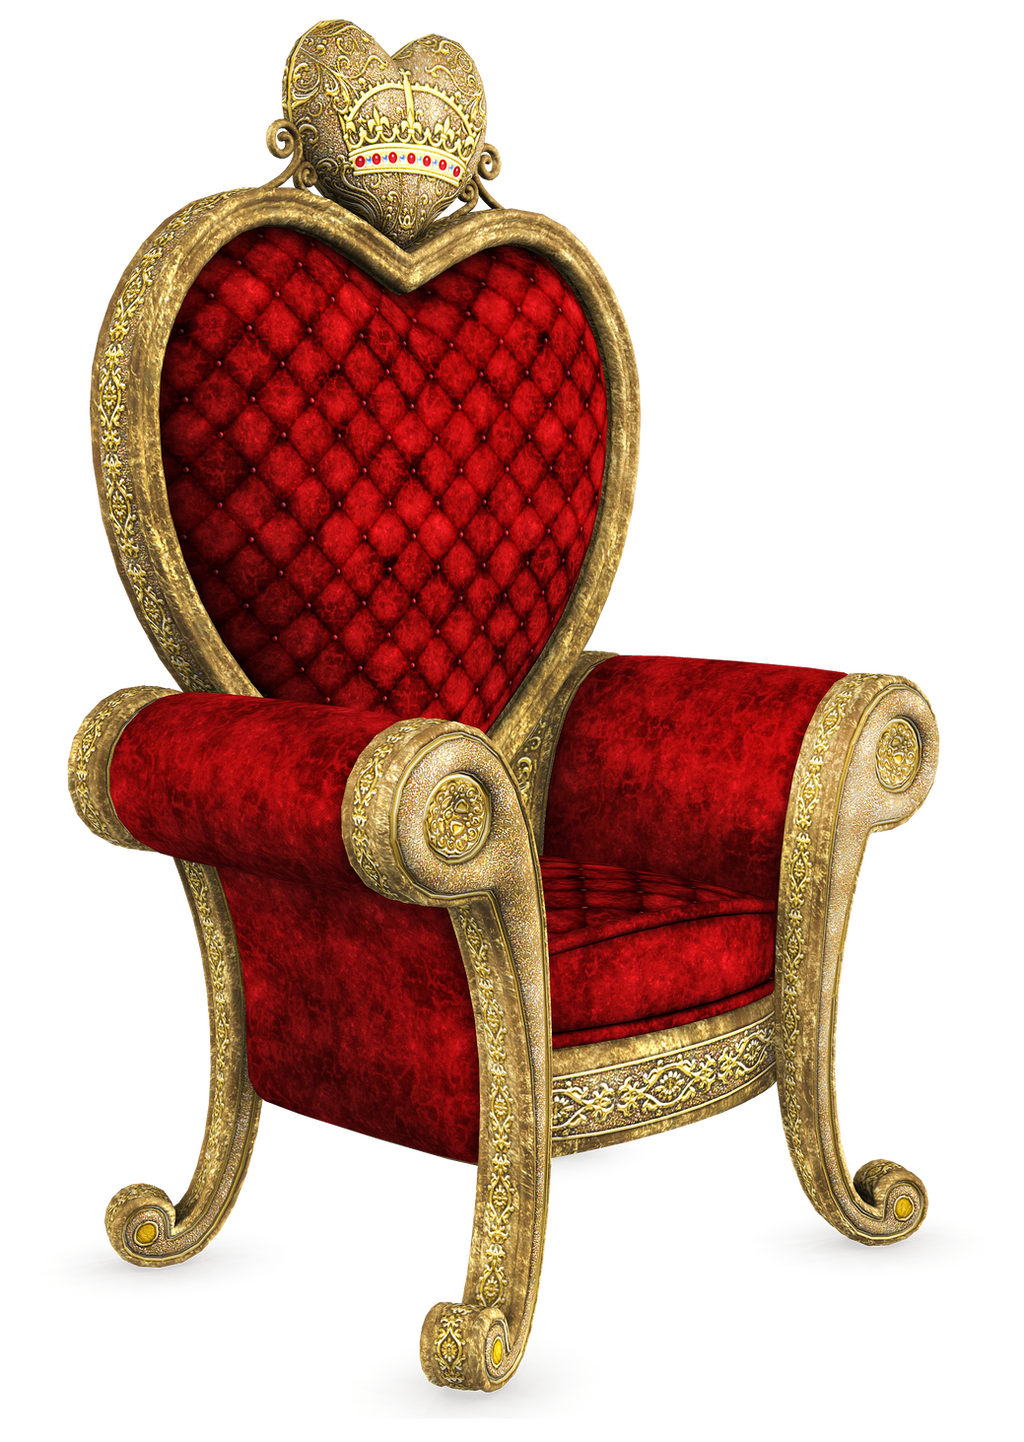 Unrestricted queen of hearts throne render 02 by for Stuhl transparent design